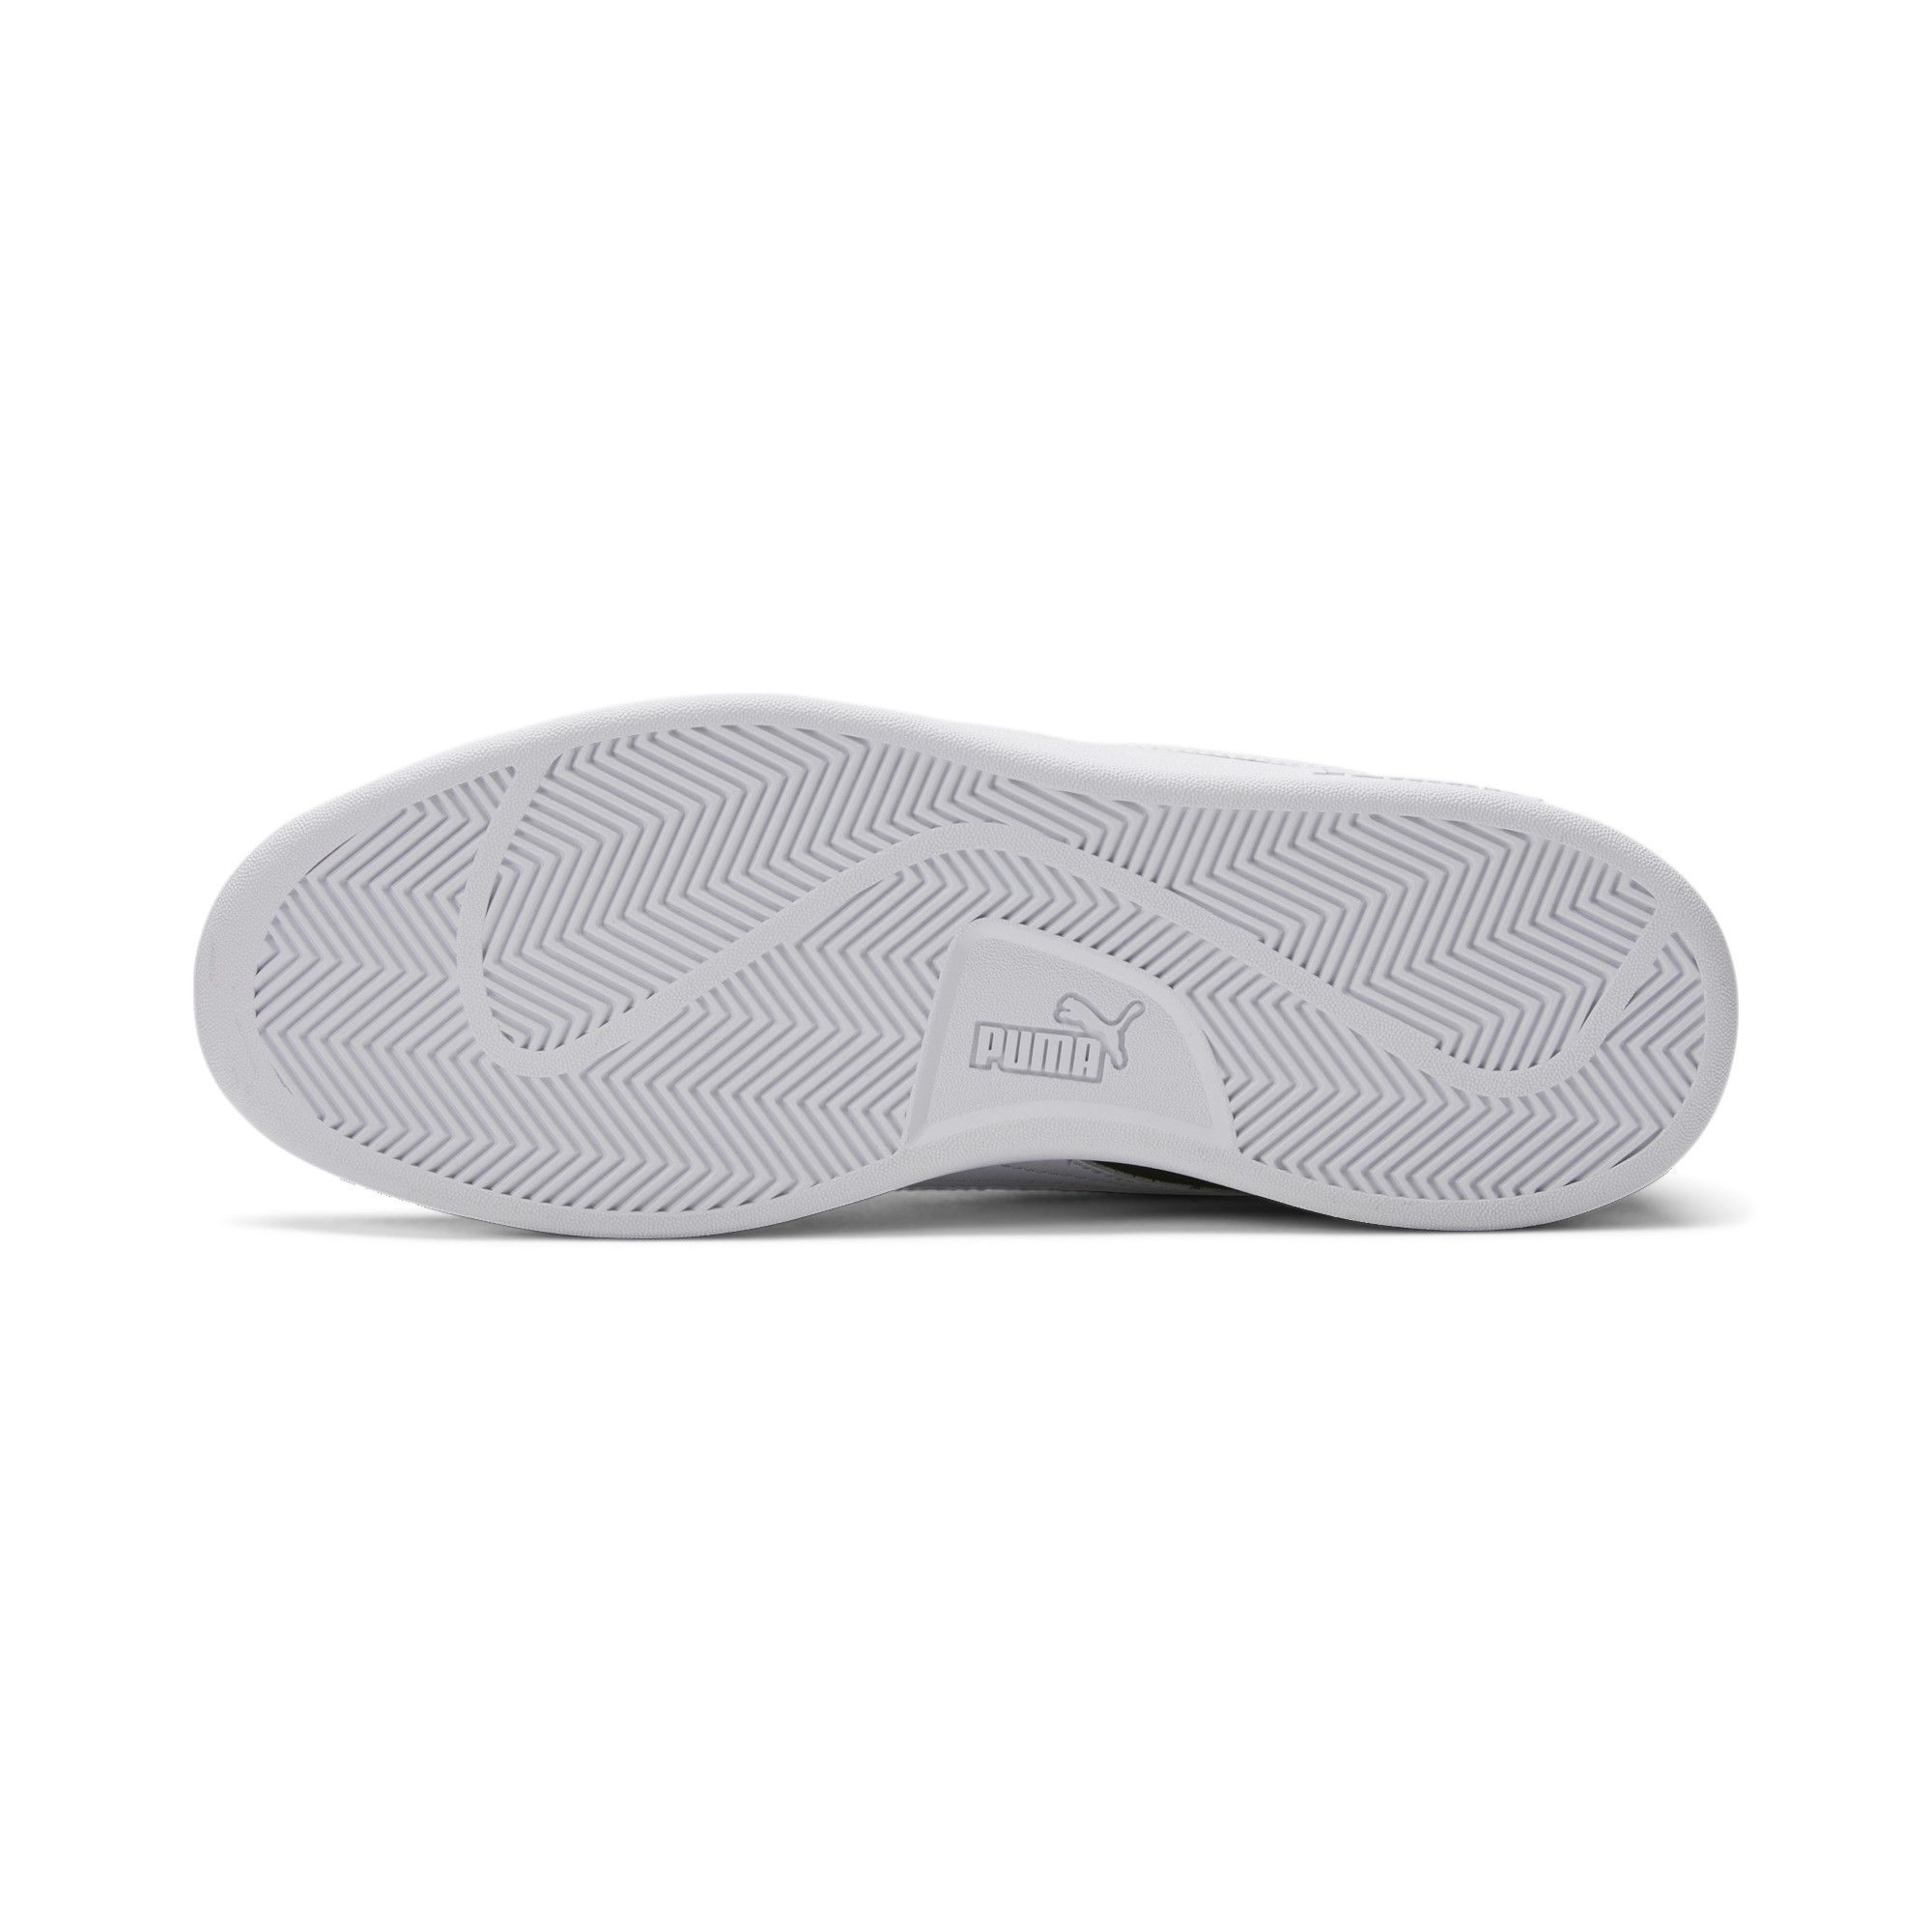 PUMA-PUMA-Smash-v2-Sneakers-Men-Shoe-Basics thumbnail 5